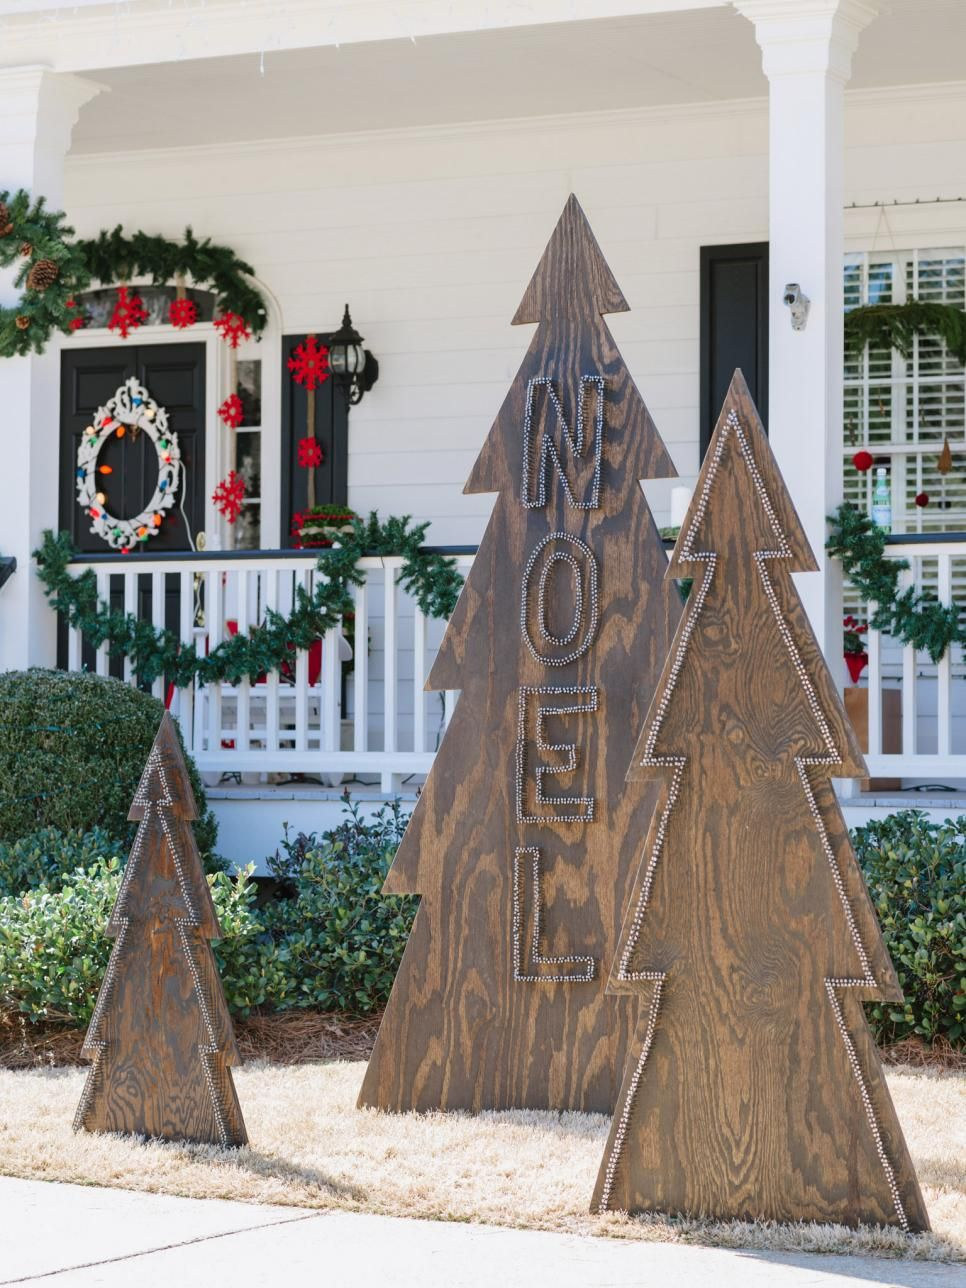 35+ Crafty Outdoor Holiday Decorating Ideas | Outdoor ...